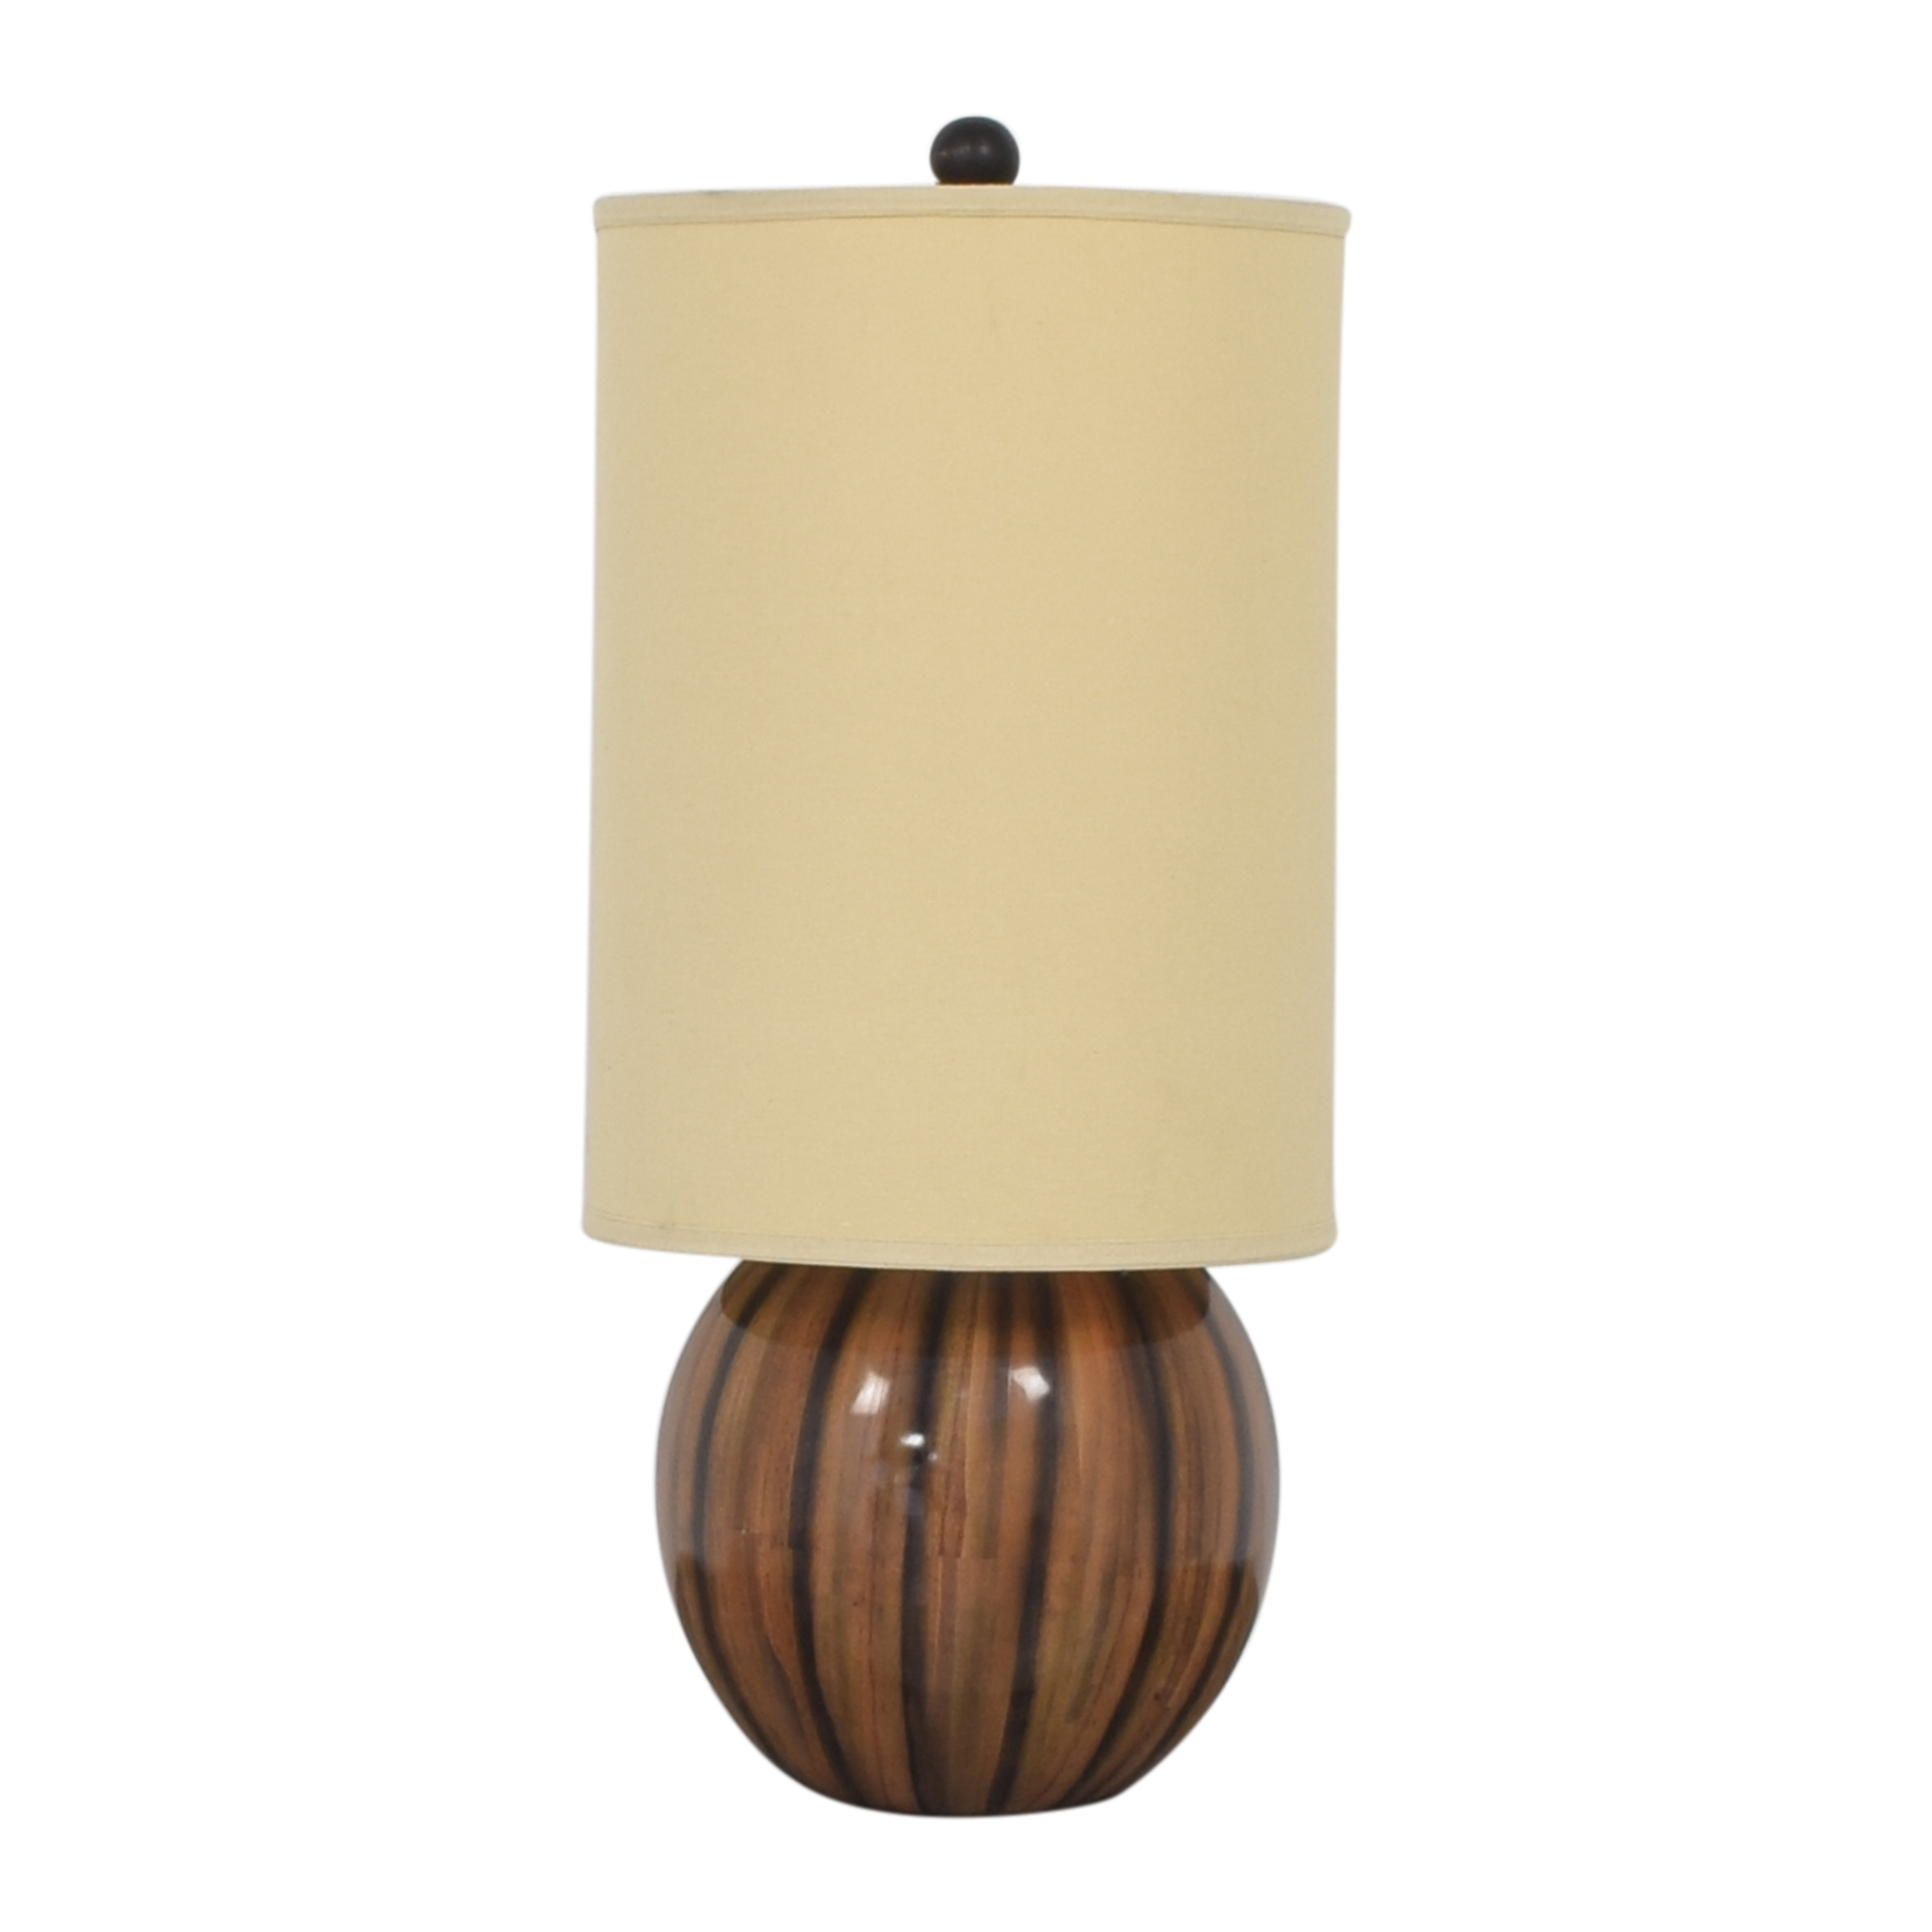 Z Gallerie Decorative Table Lamp / Lamps